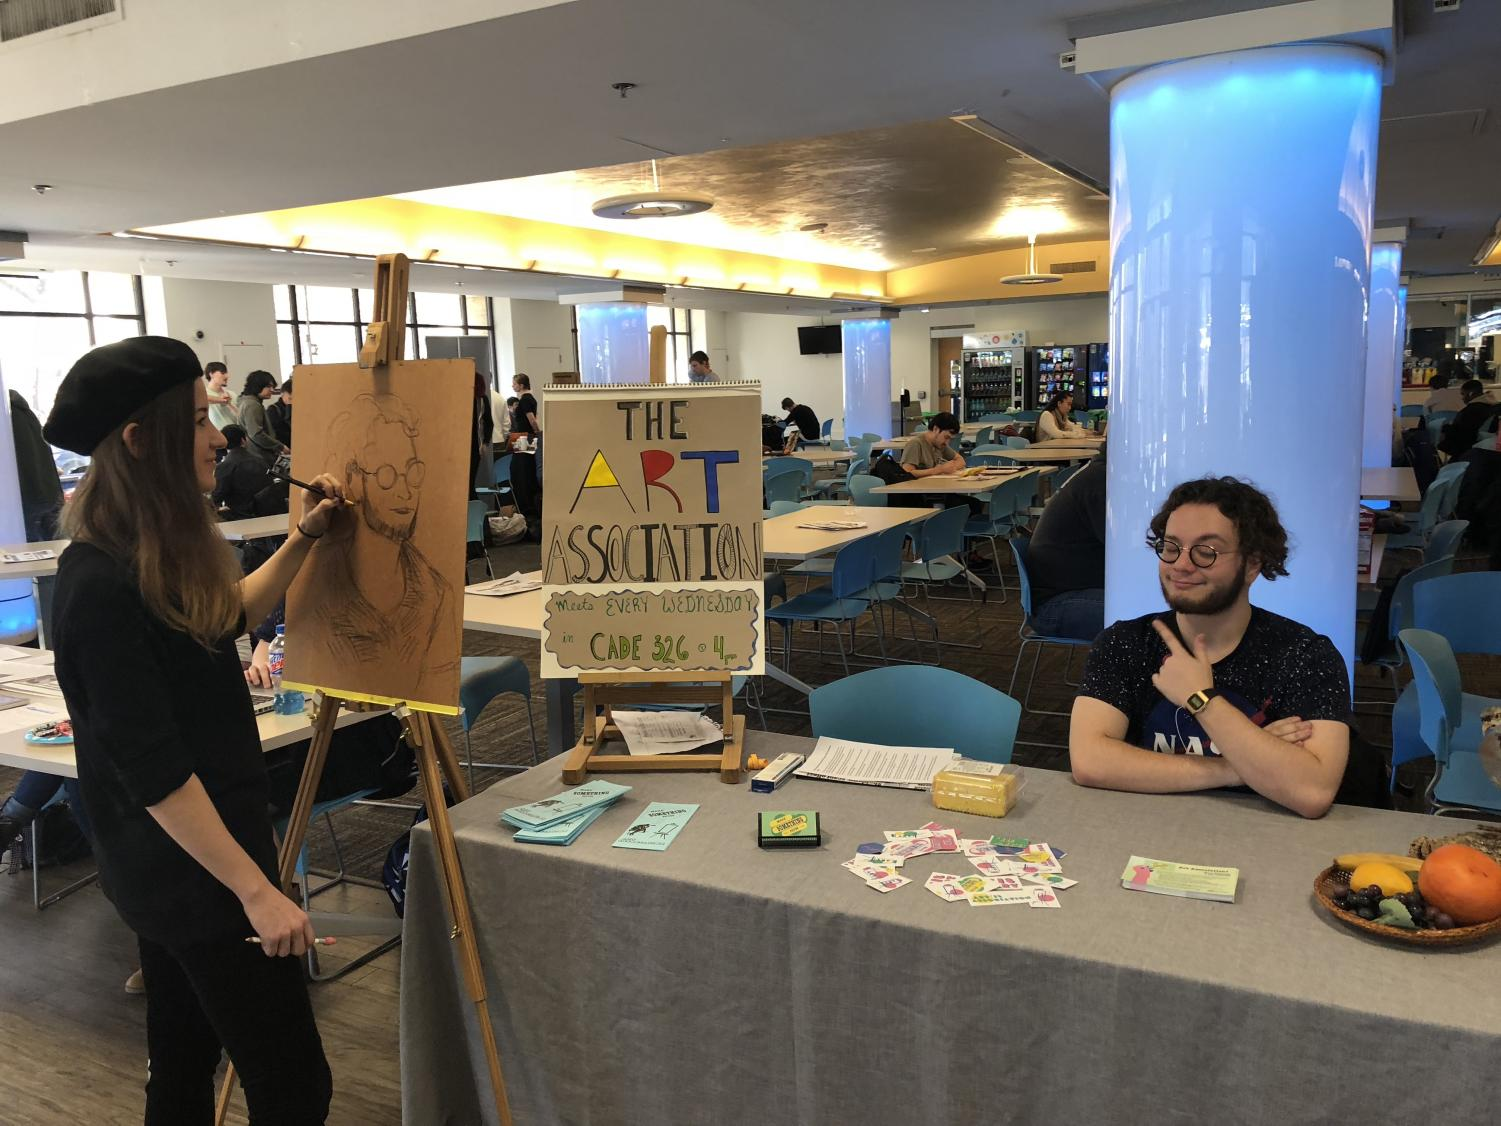 Kat Pfeiffer, a second year art student, and Chris Lins, the president of the Art Association, promoted their club at the Student Involvement Fair on Jan. 31.